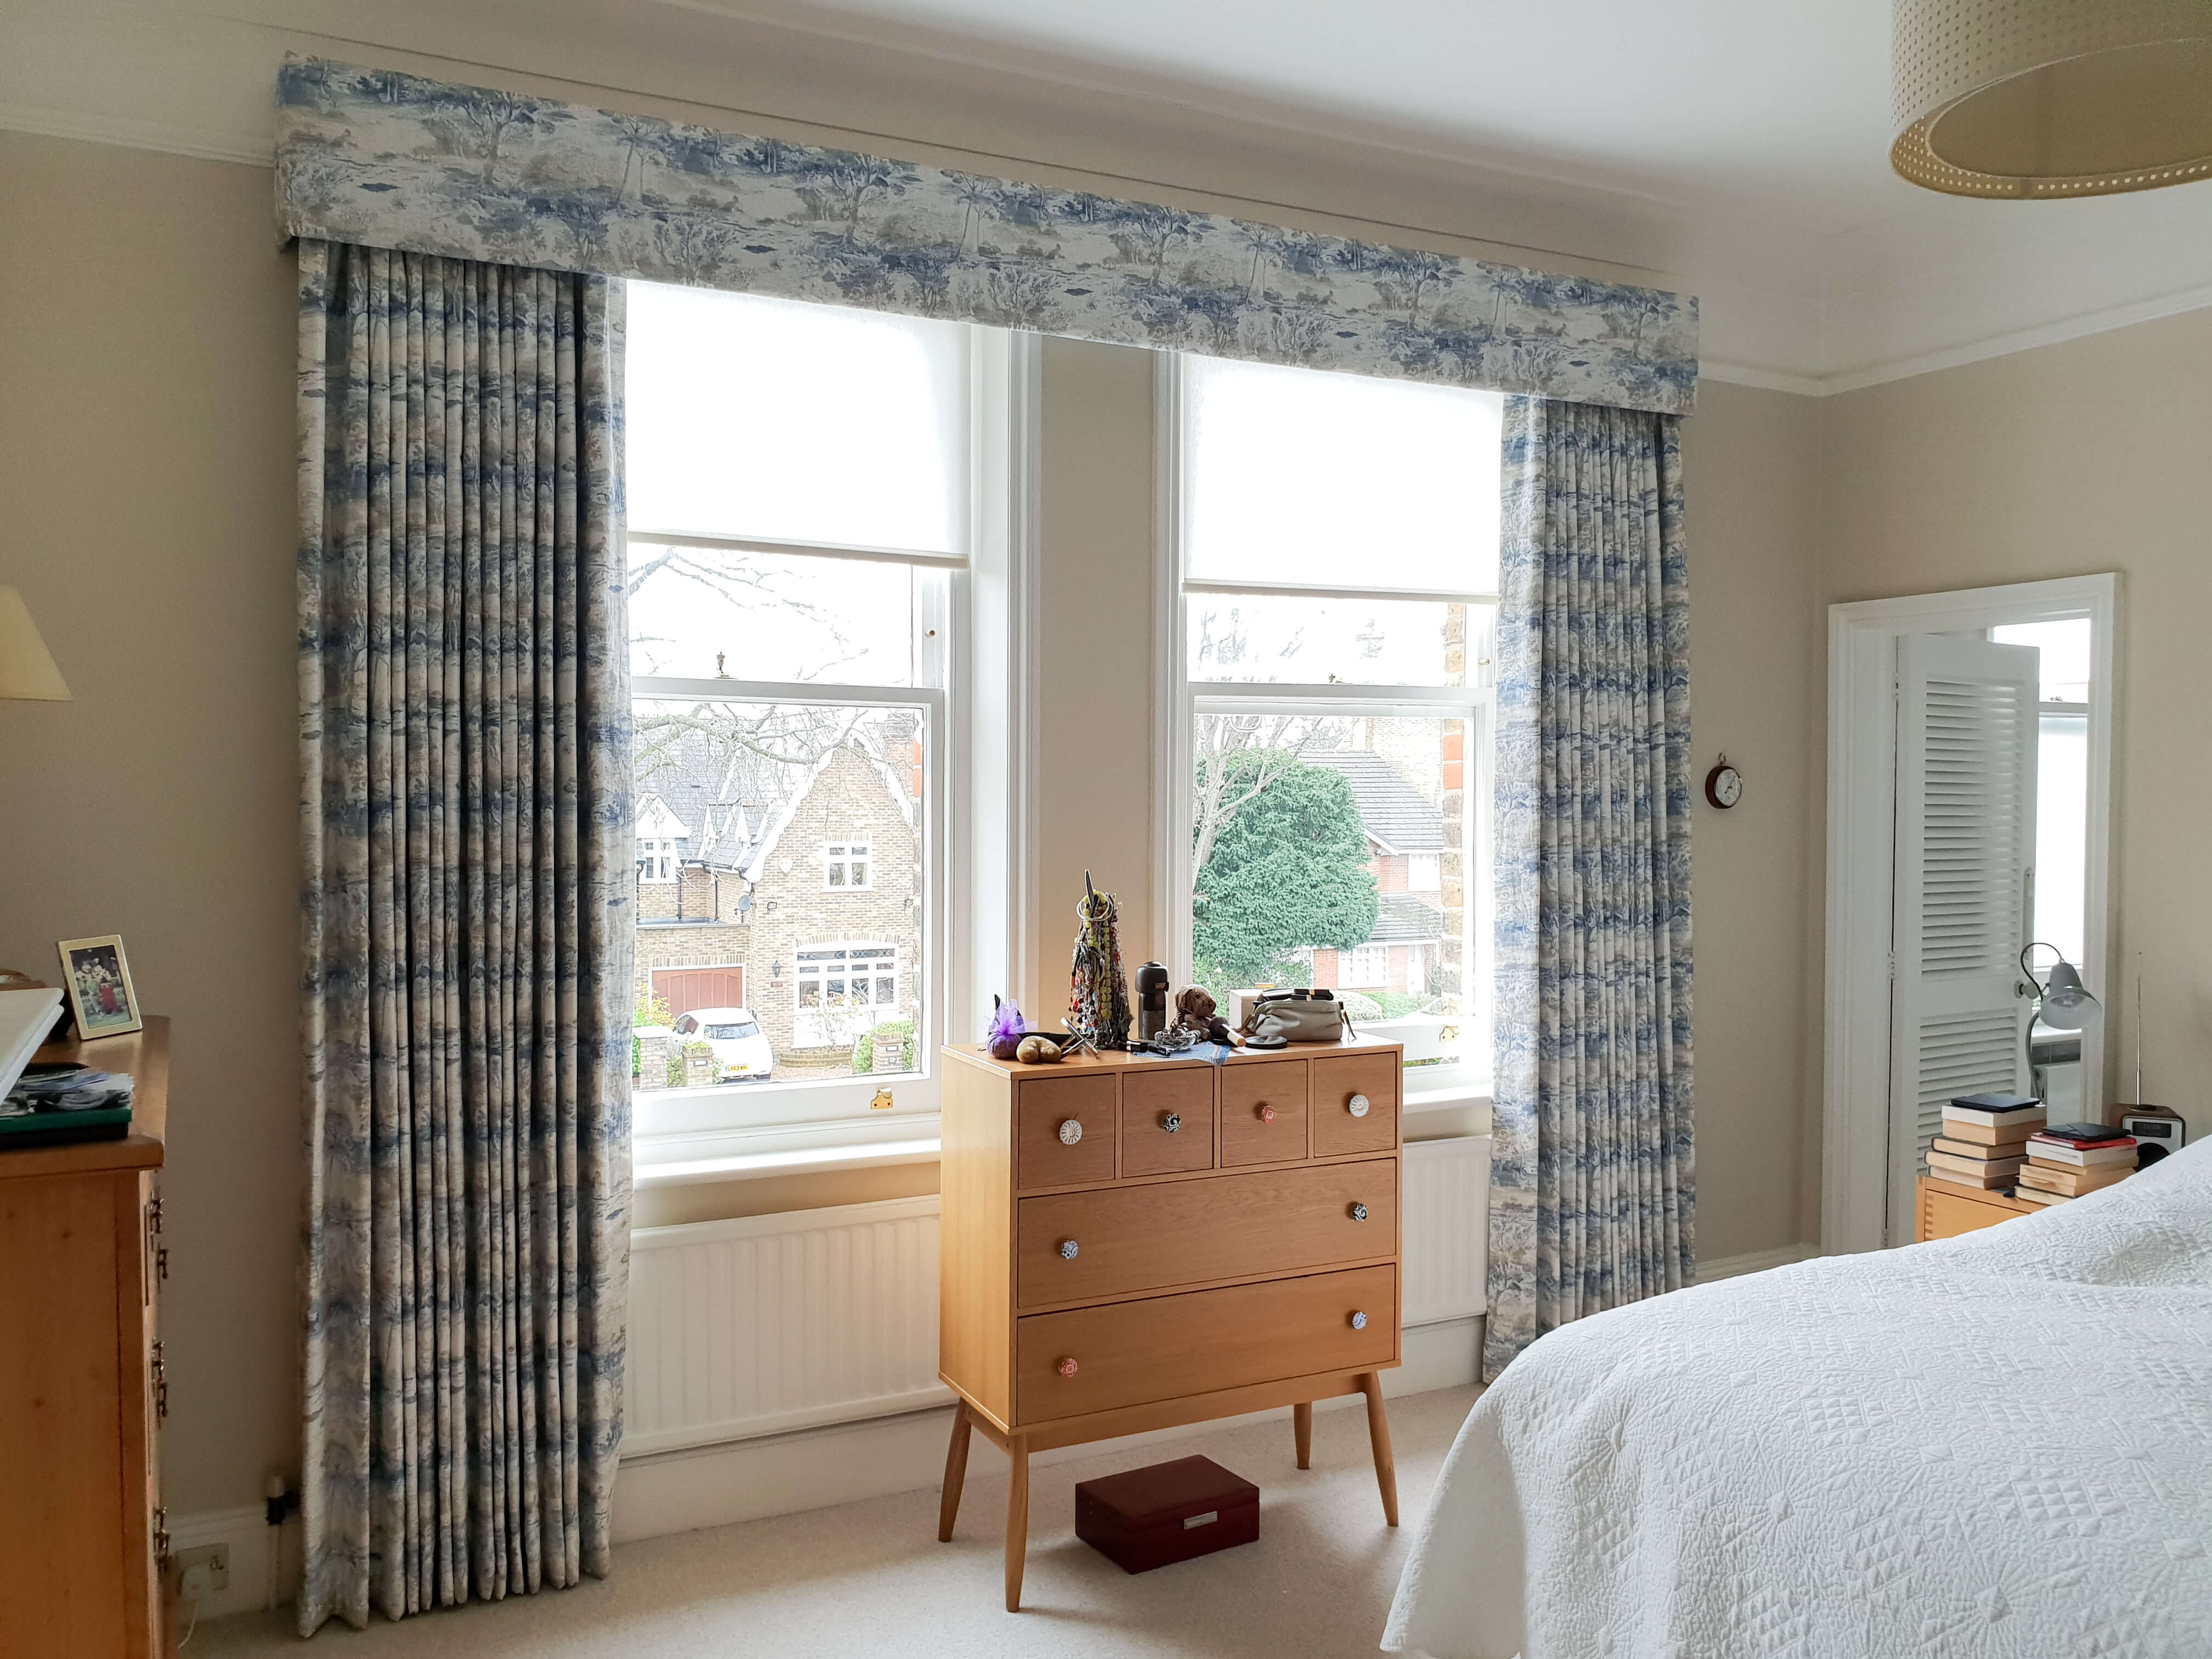 Patterened bedroom curtains with box pelmet